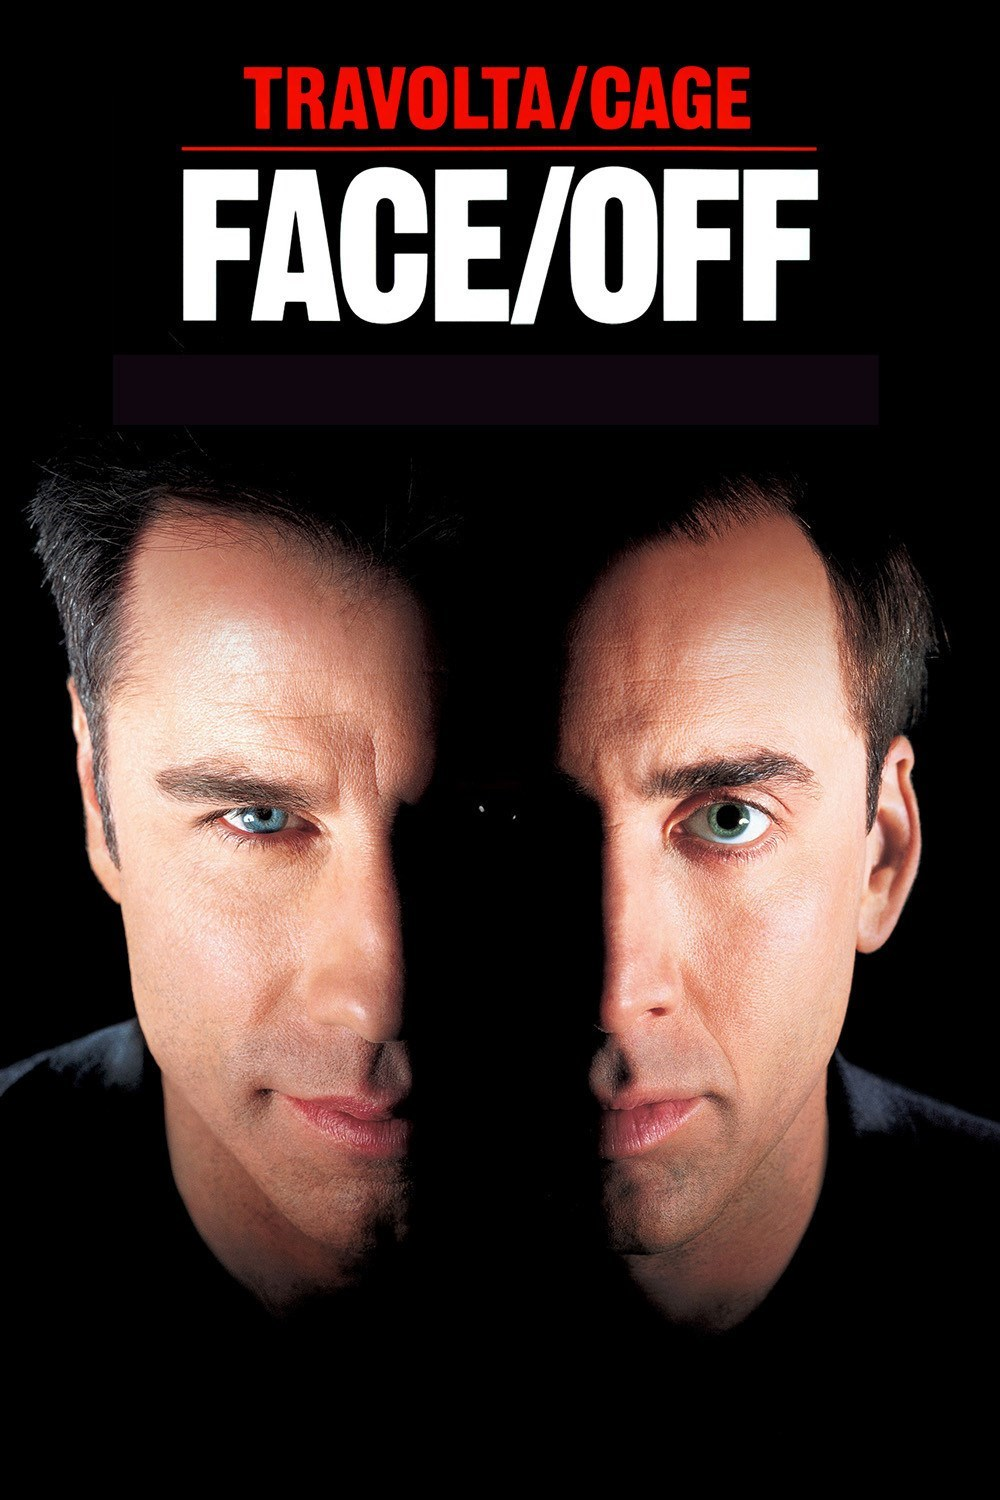 Face off  poster is copied by Ek Vilain